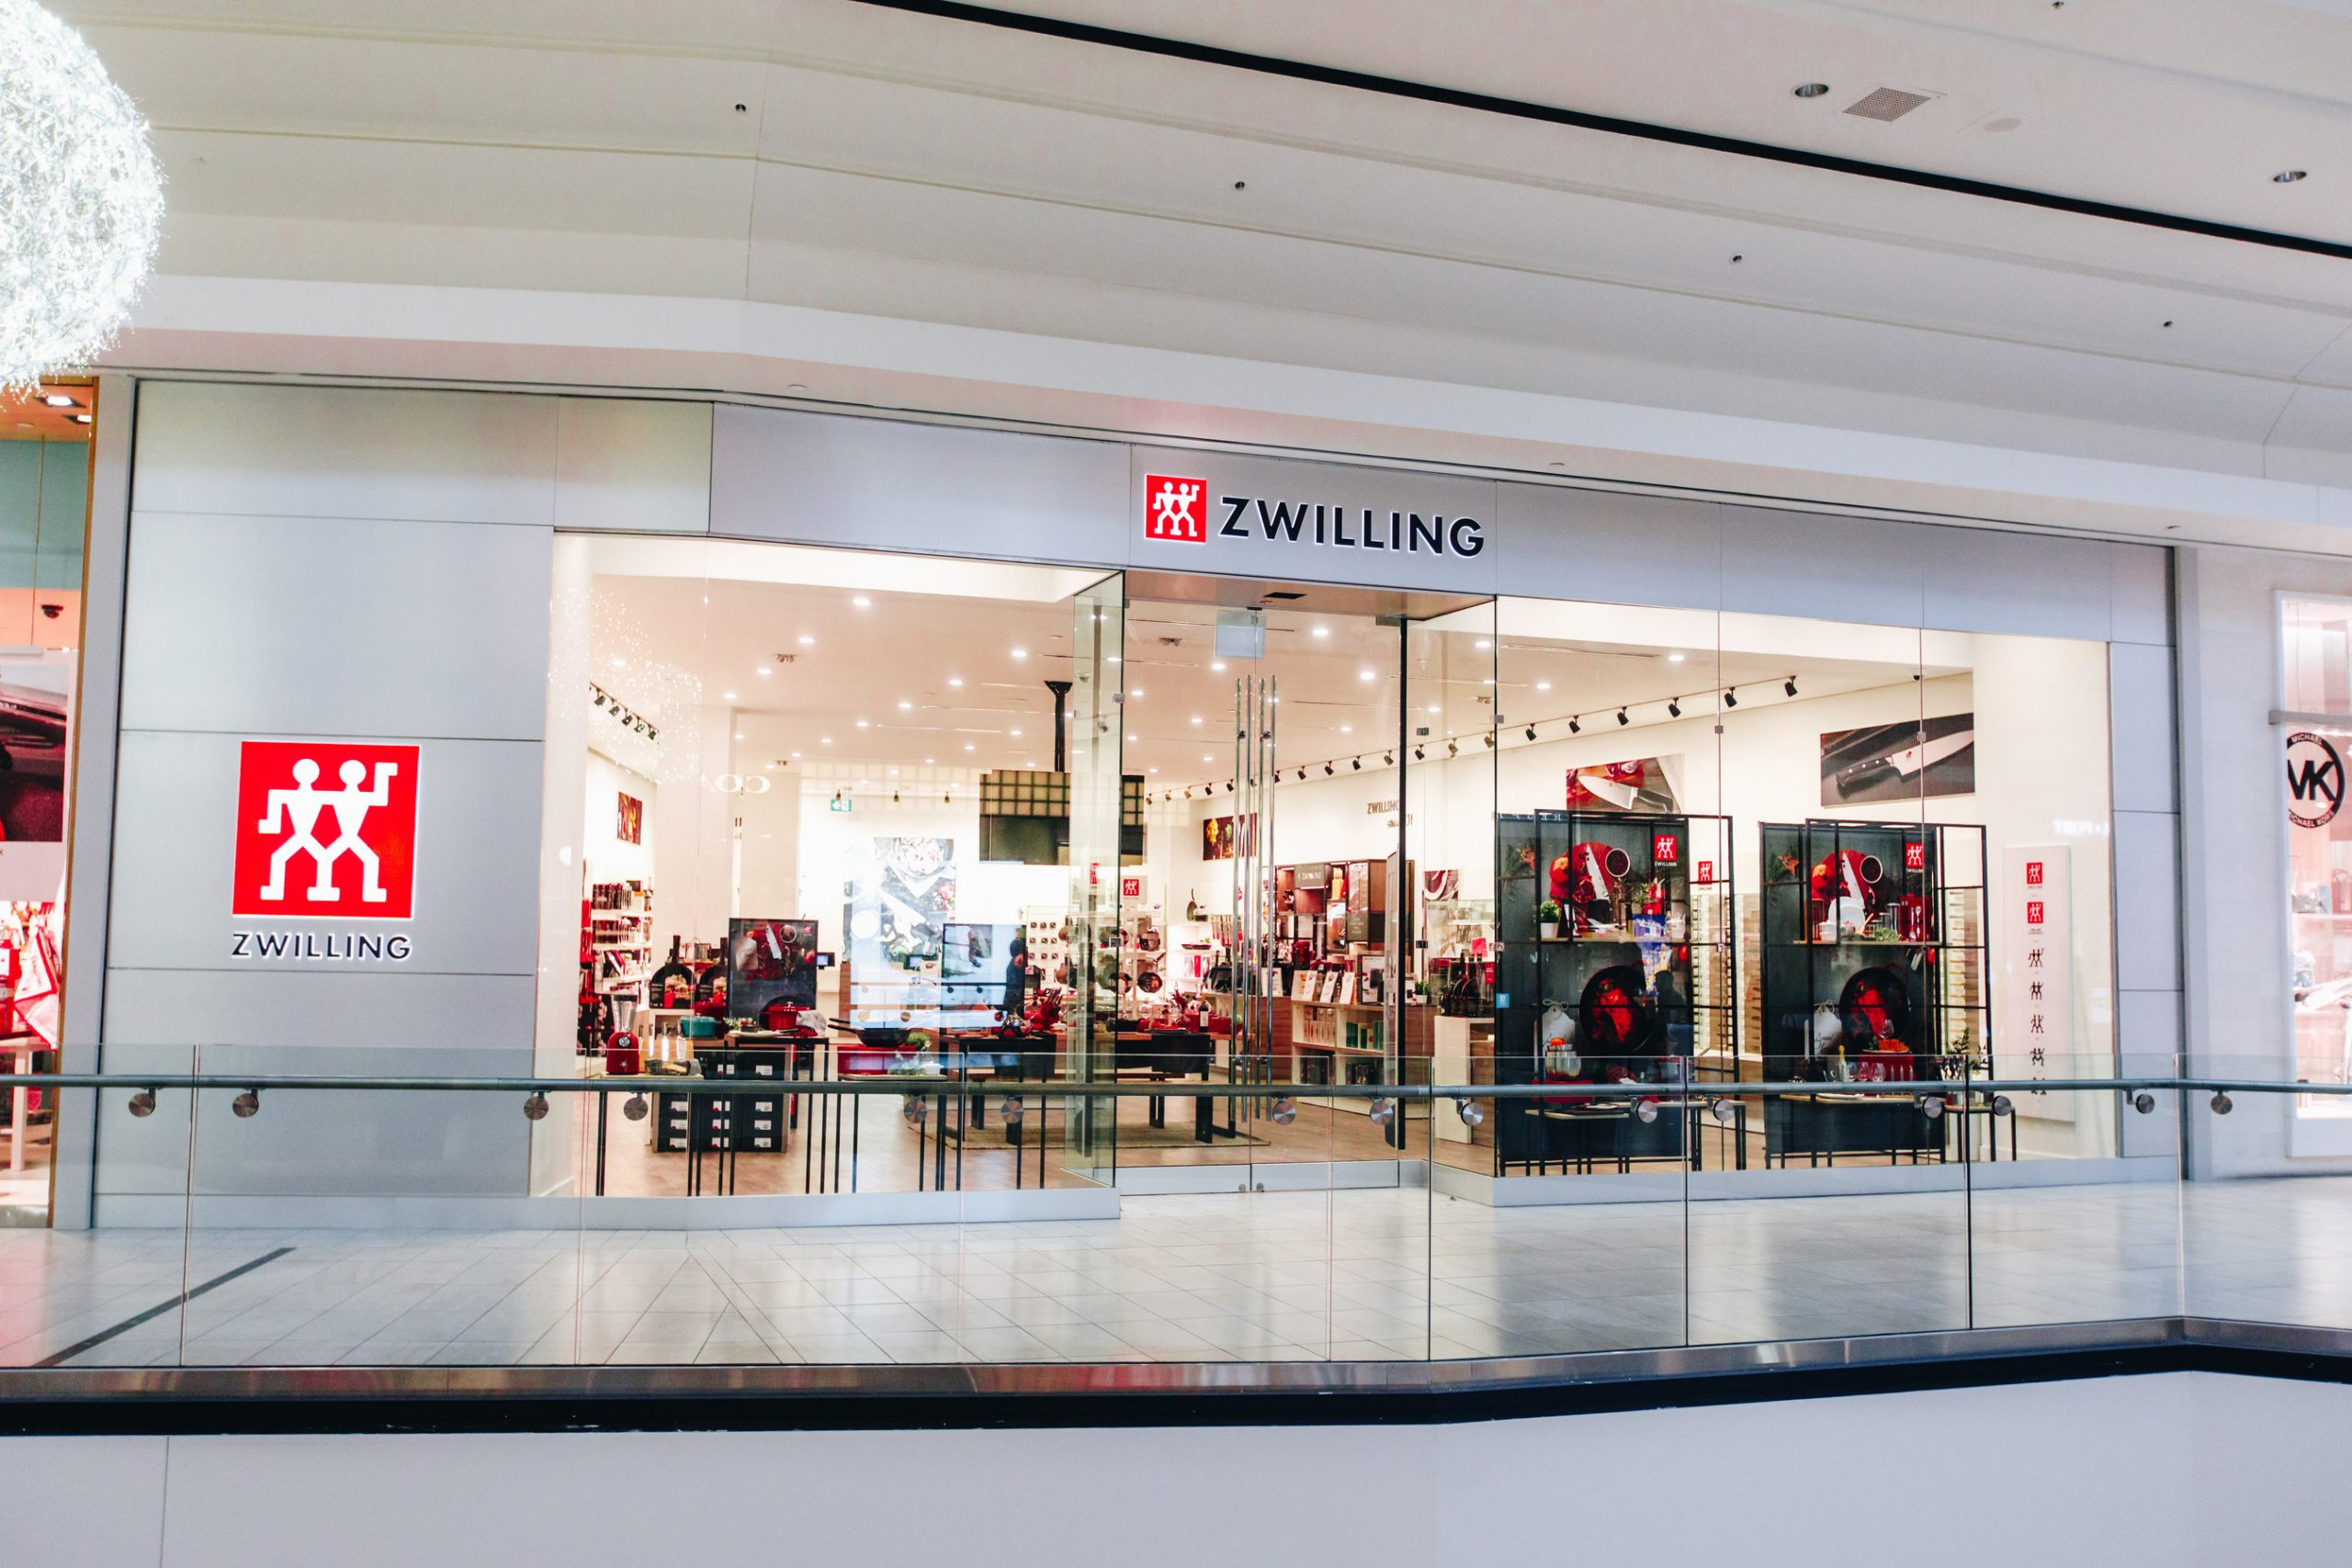 Zwillings flagship store in Markham